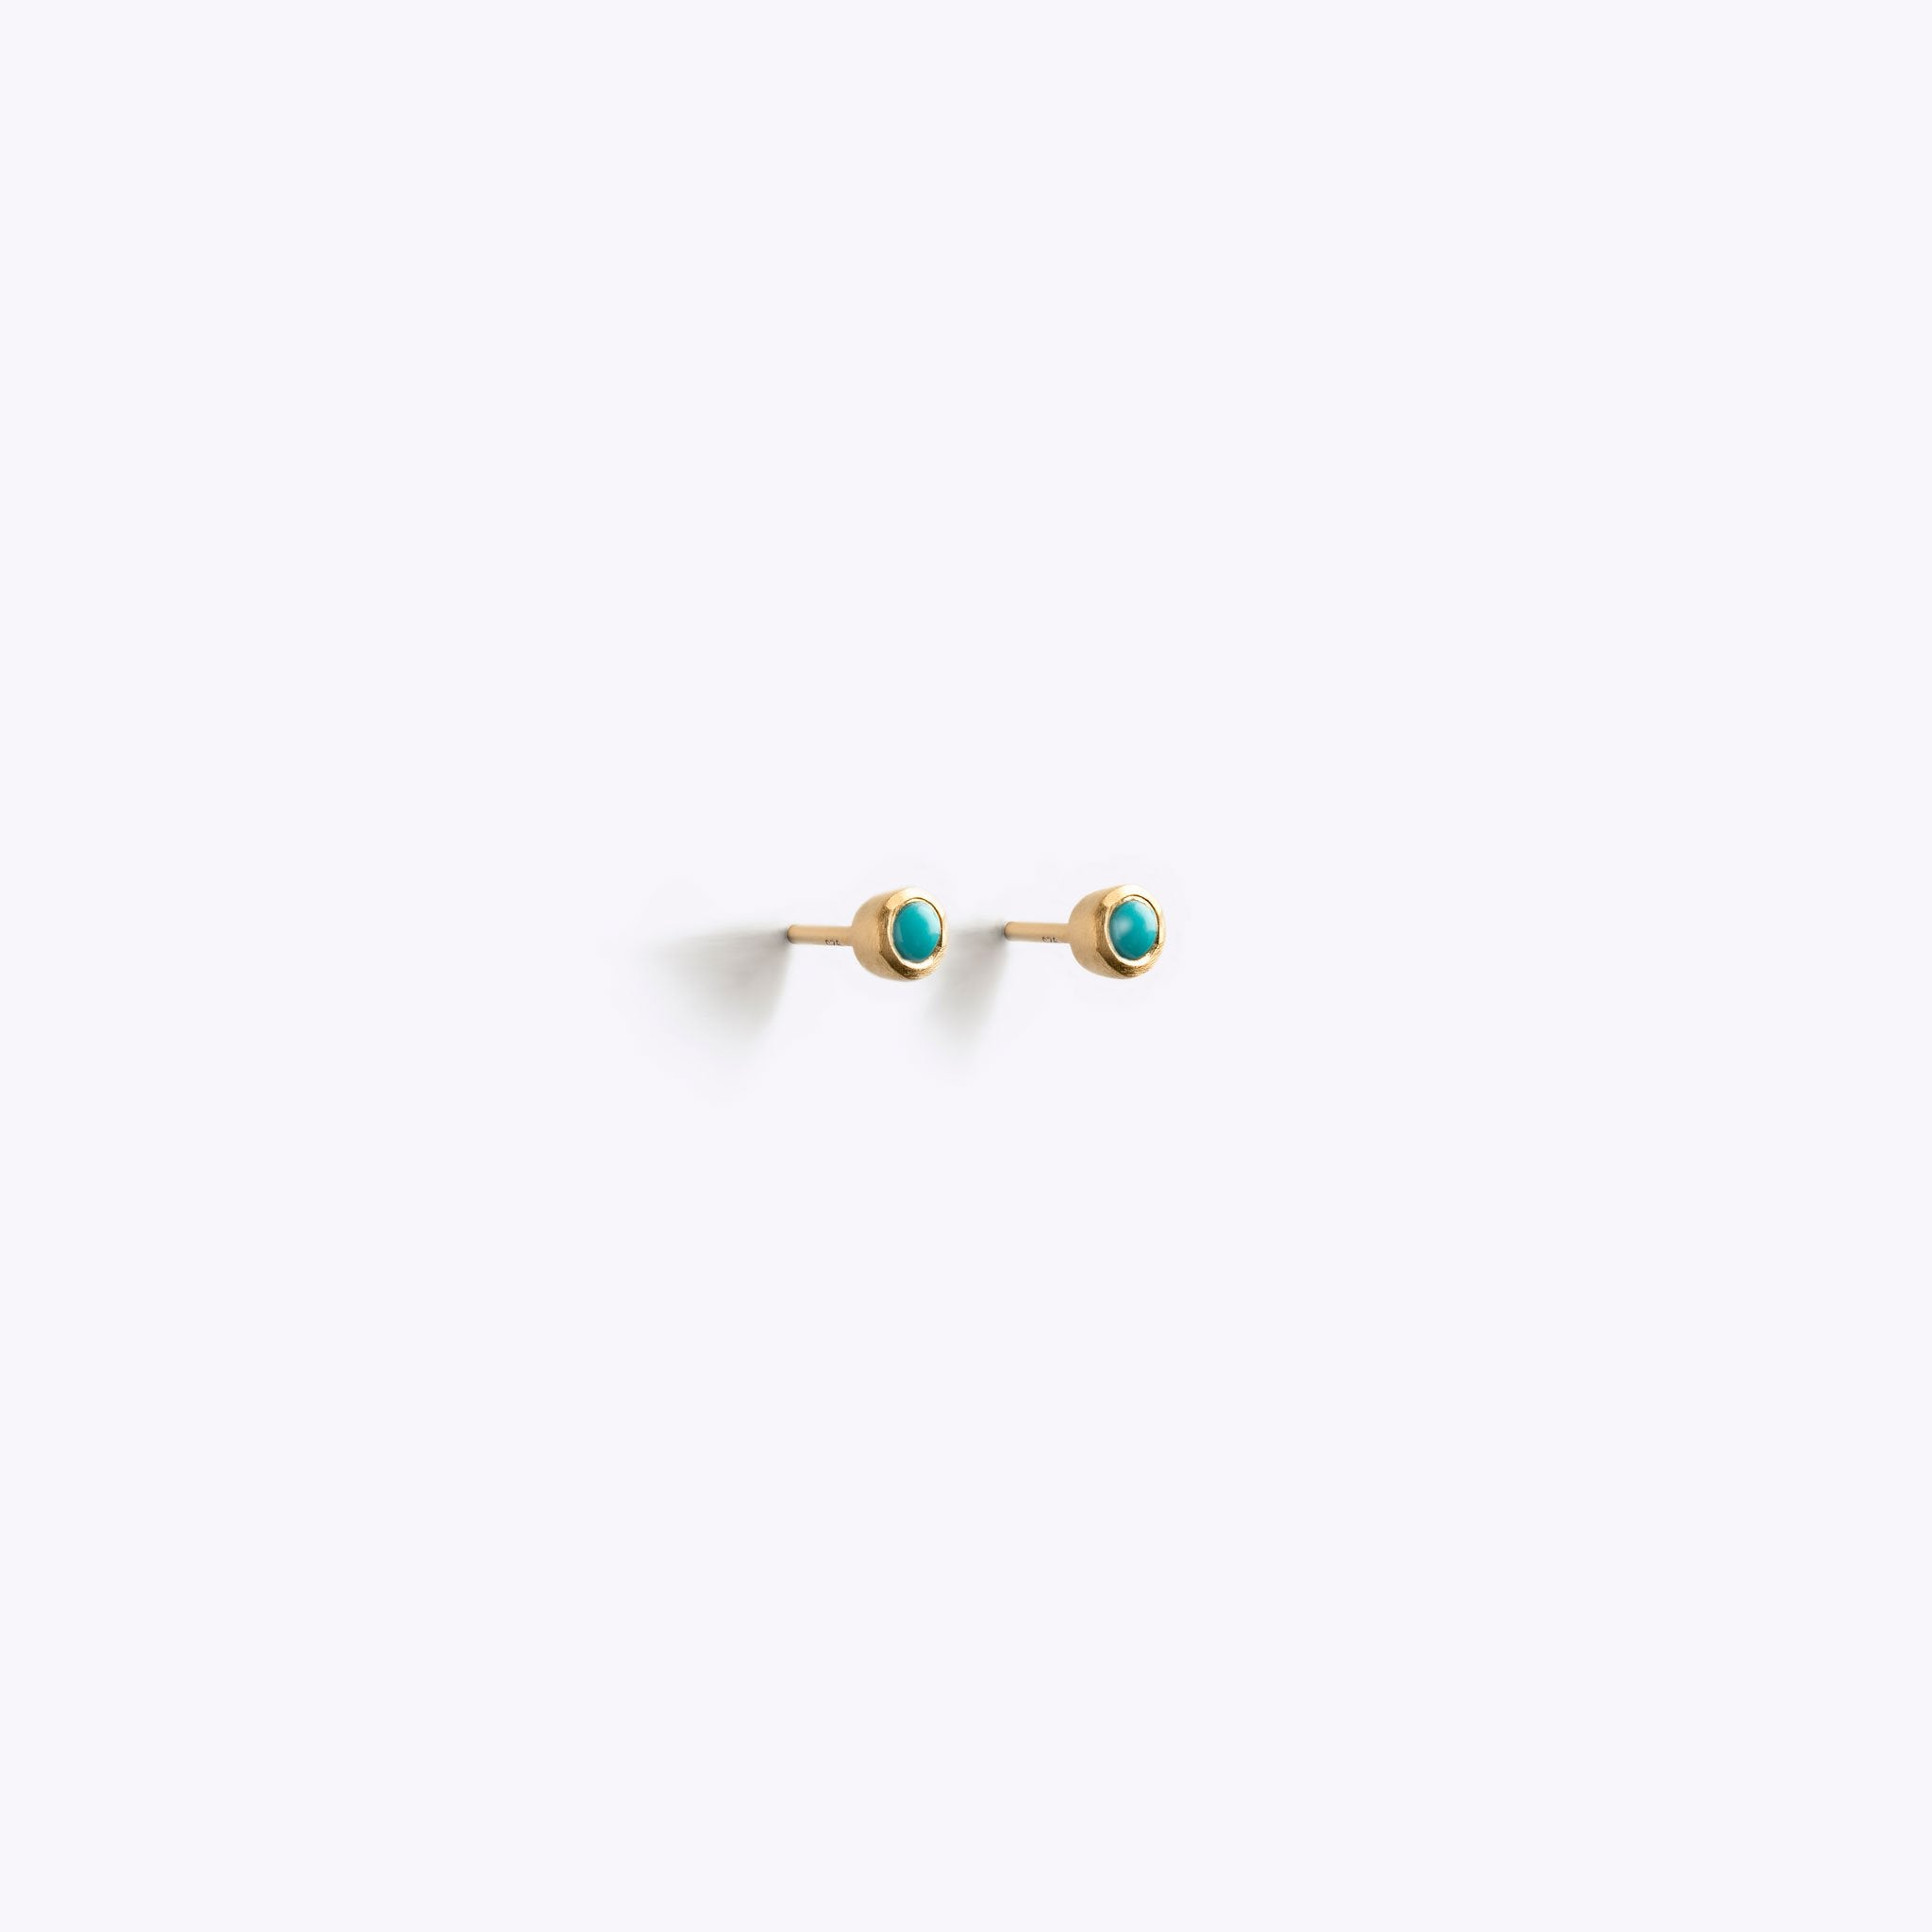 Wanderlust Life Ethically Handmade jewellery made in the UK. Minimalist gold and fine cord jewellery. December birthstone earrings. Arizona Turquoise gold stud gemstone earrings.